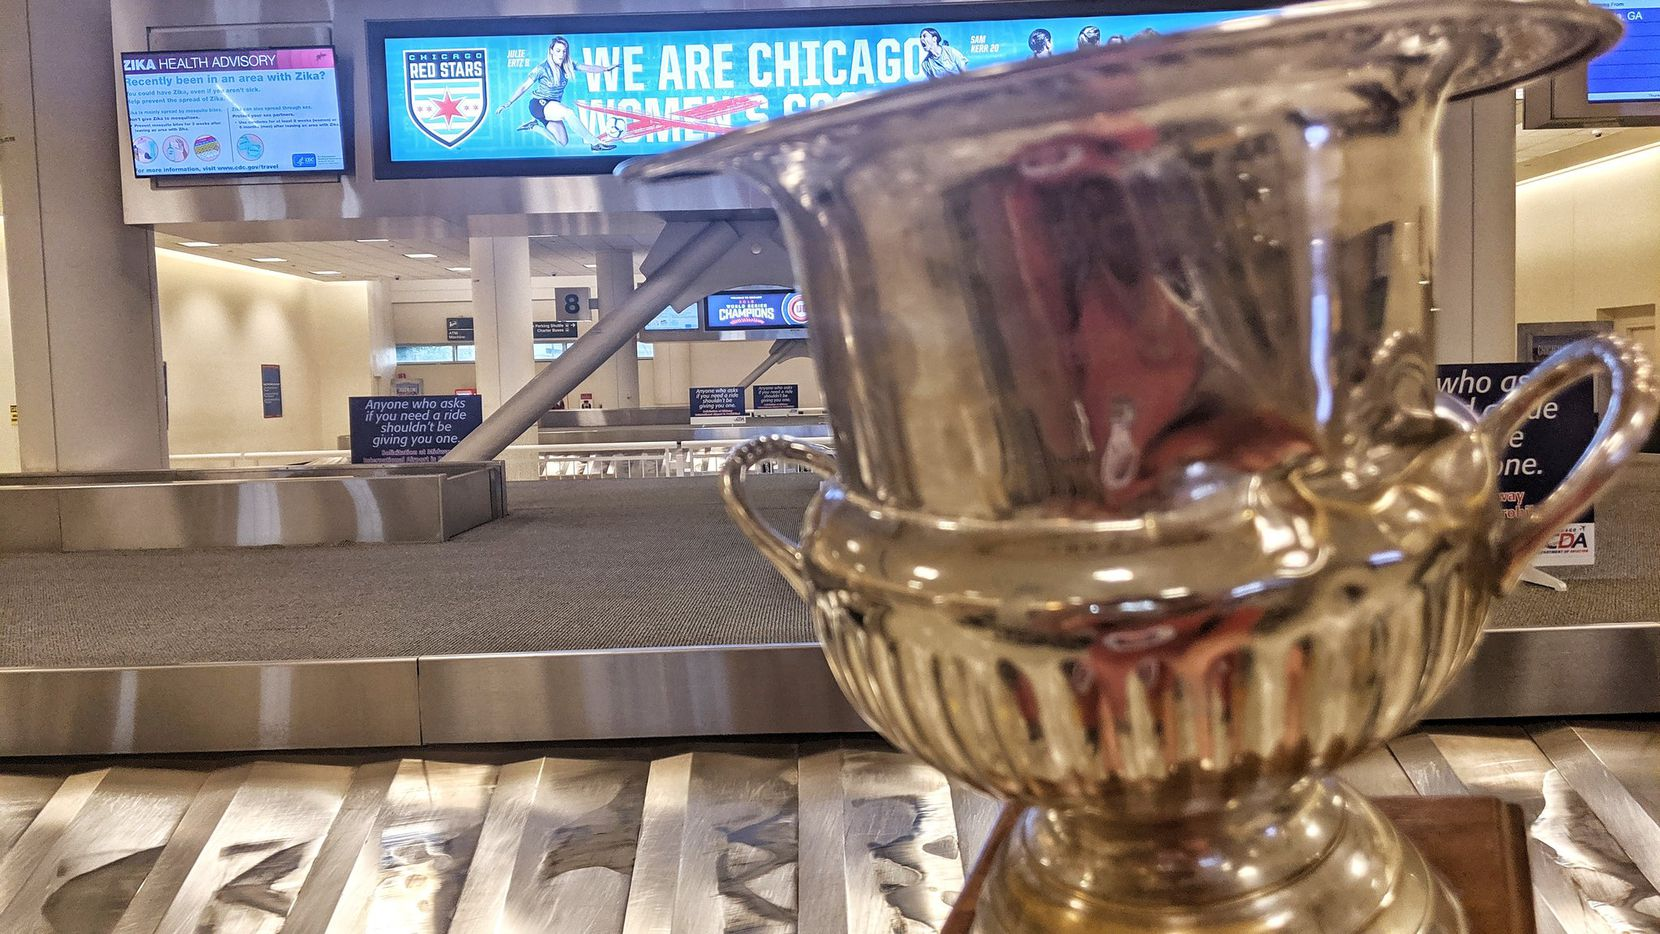 The Brimstone Cup has made it's way to Chicago for the FC Dallas game against the Fire.